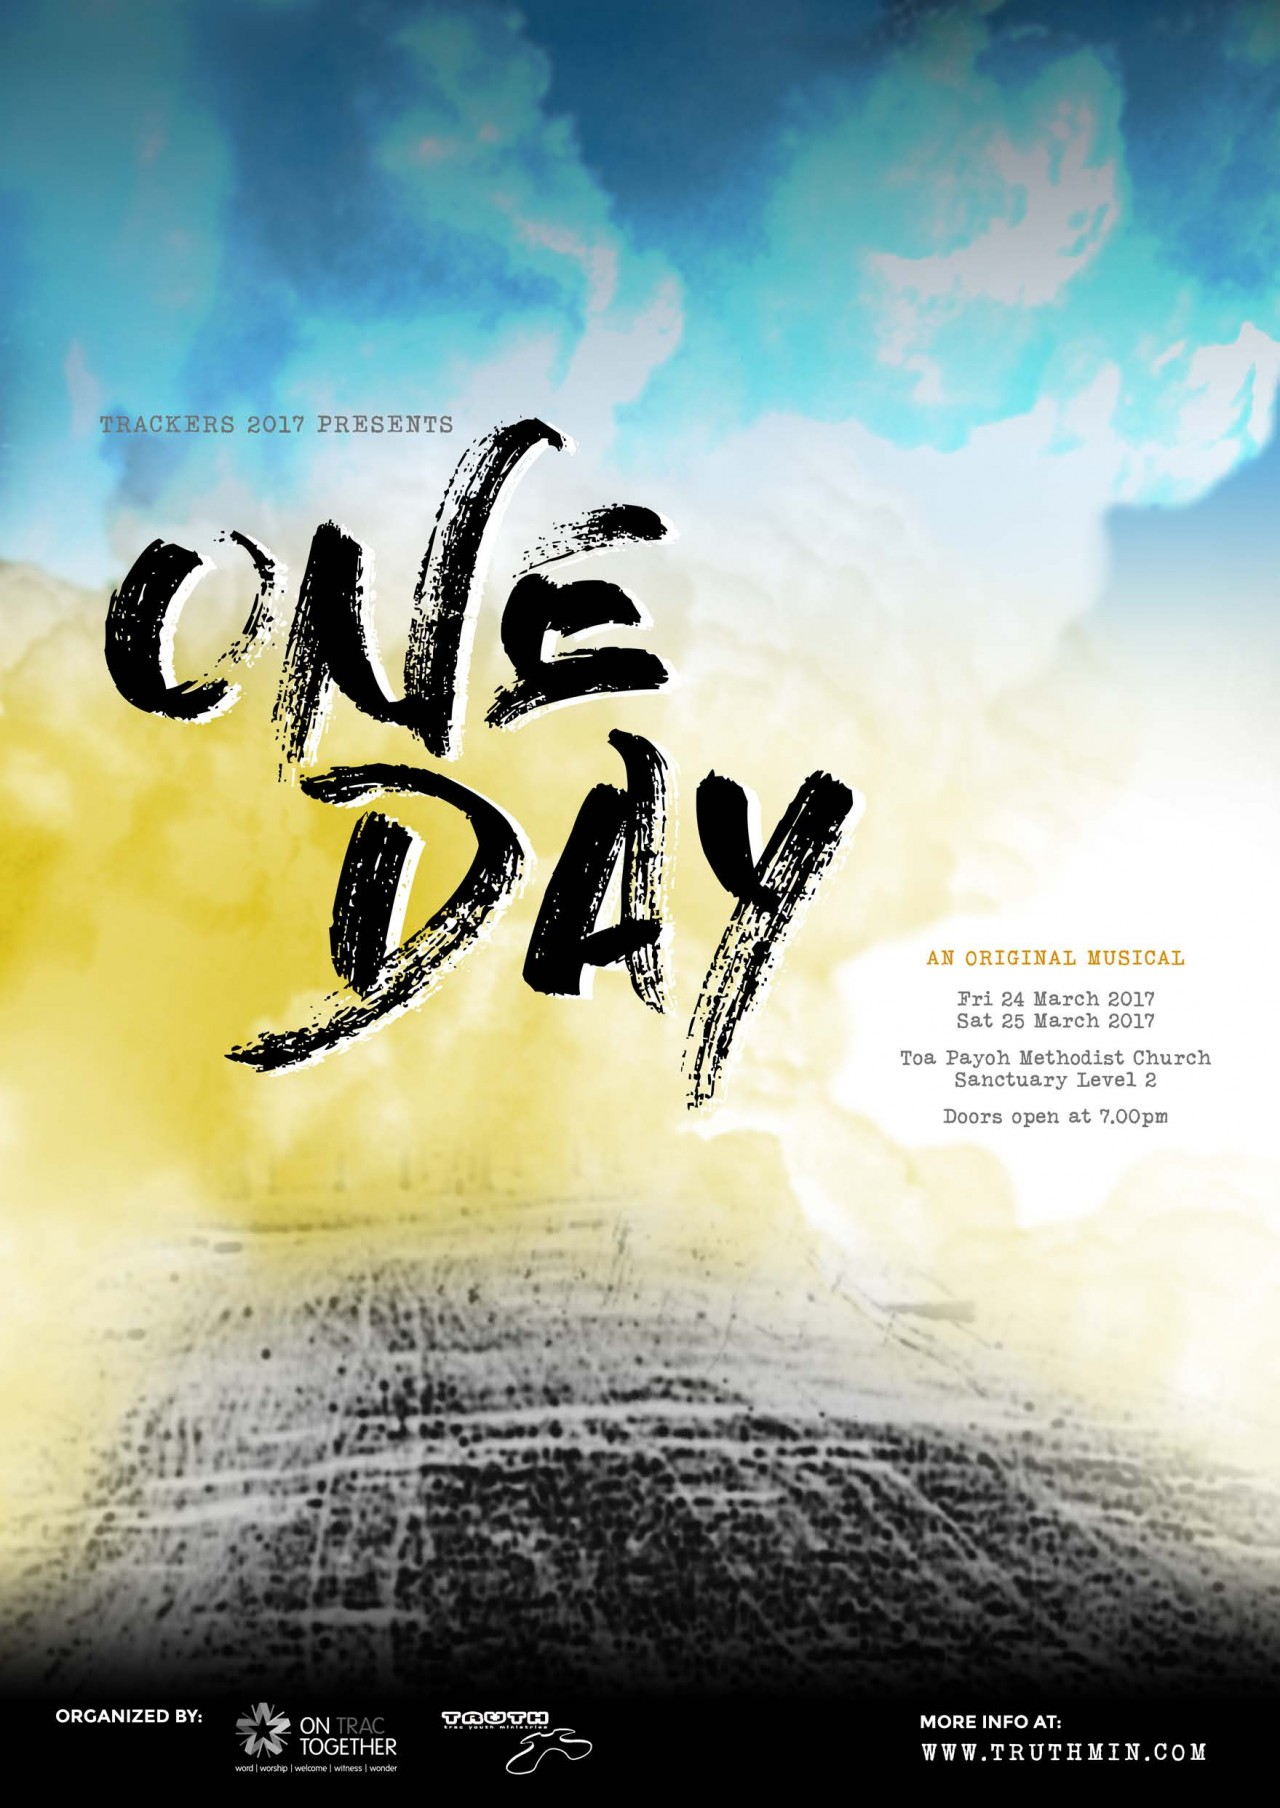 TRACKERS 2017 Musical: One Day